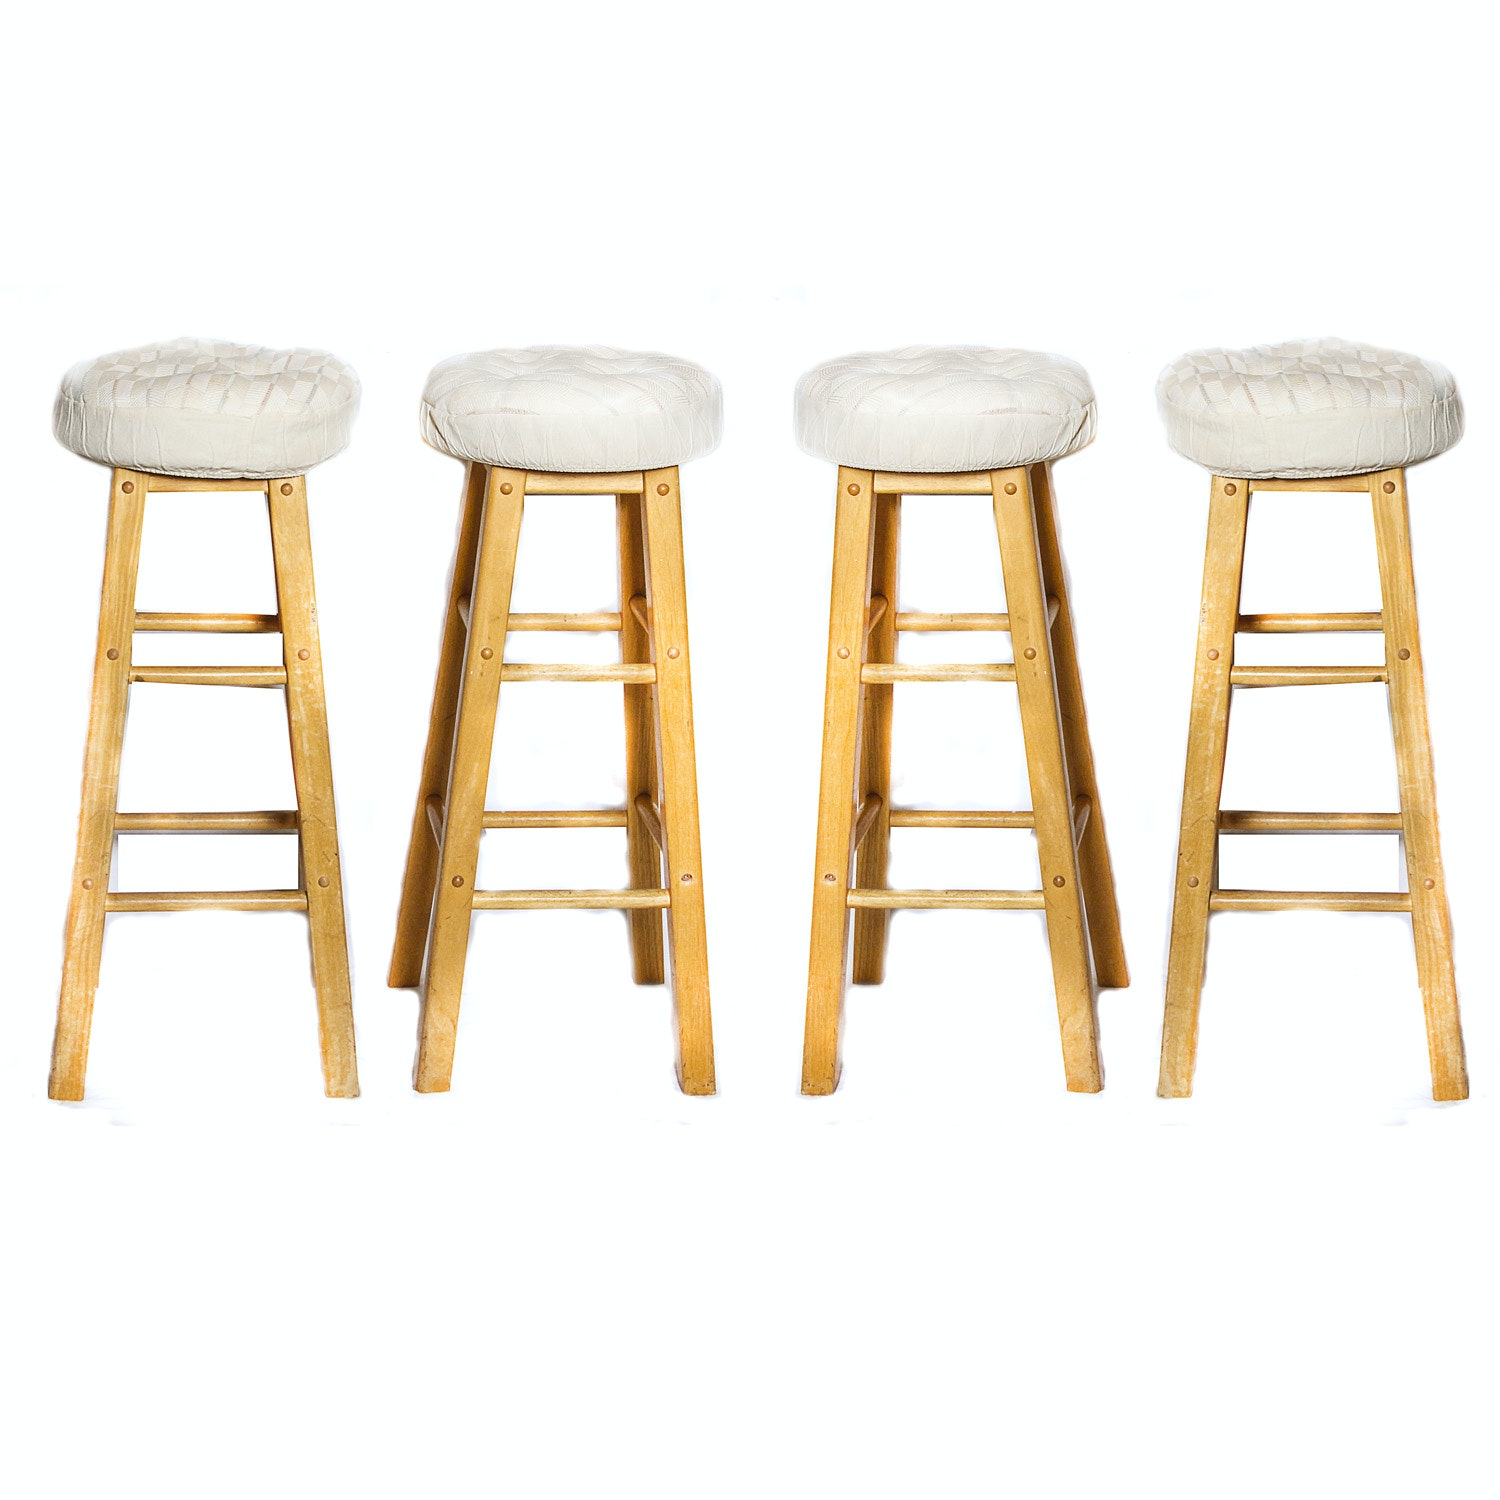 Four Oak Barstools